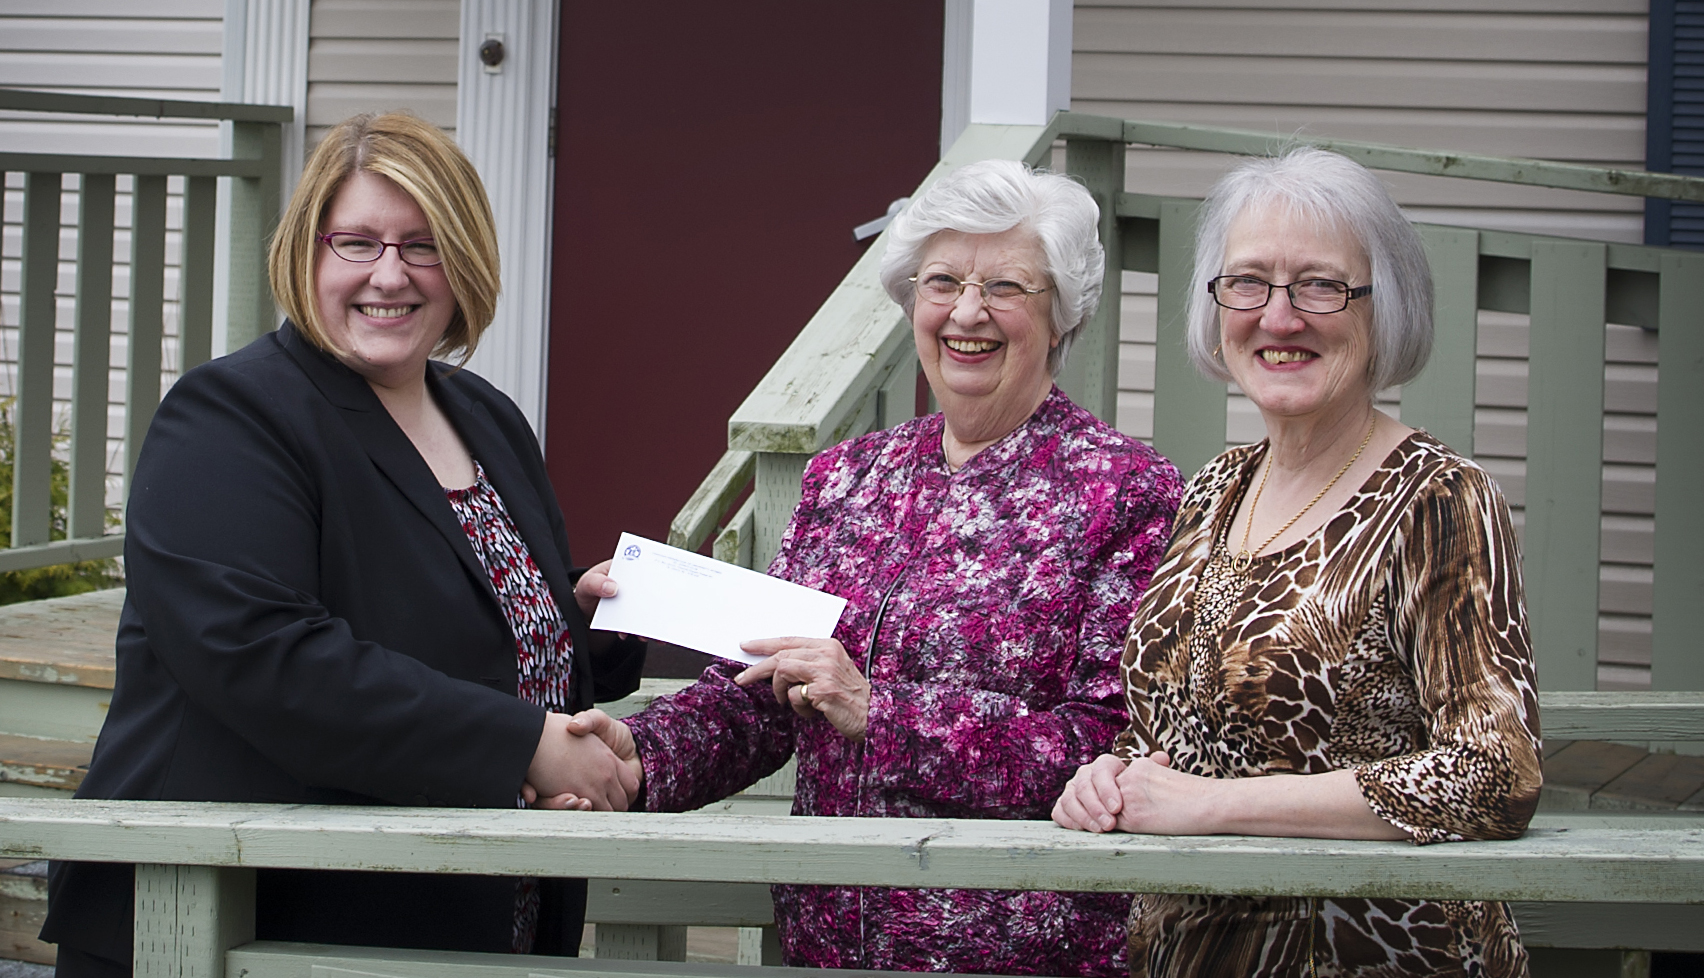 CFUW recently donated $20,000 – the most it has presented to Memorial. From left are Jennifer O'Neill, associate director, Alumni Affairs and Development, who accepted the cheque; Hazel Pritchett Harris, CFUW president; and Sharon Kieley, CFUW treasurer.